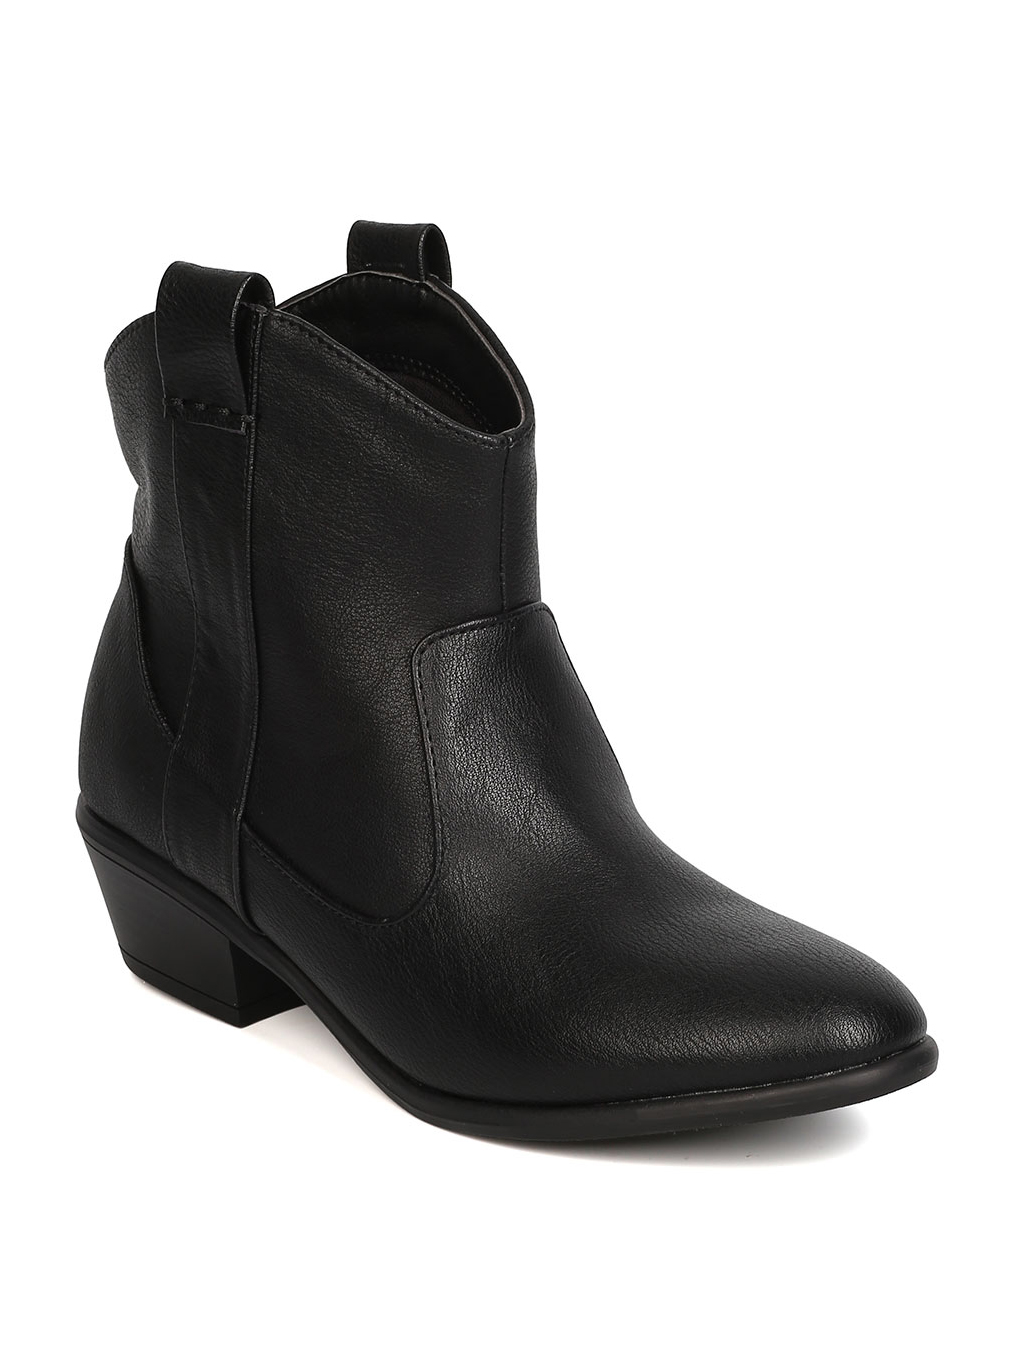 New Women Wild Diva Manny-17 Leatherette Stacked Heel Cowboy Bootie